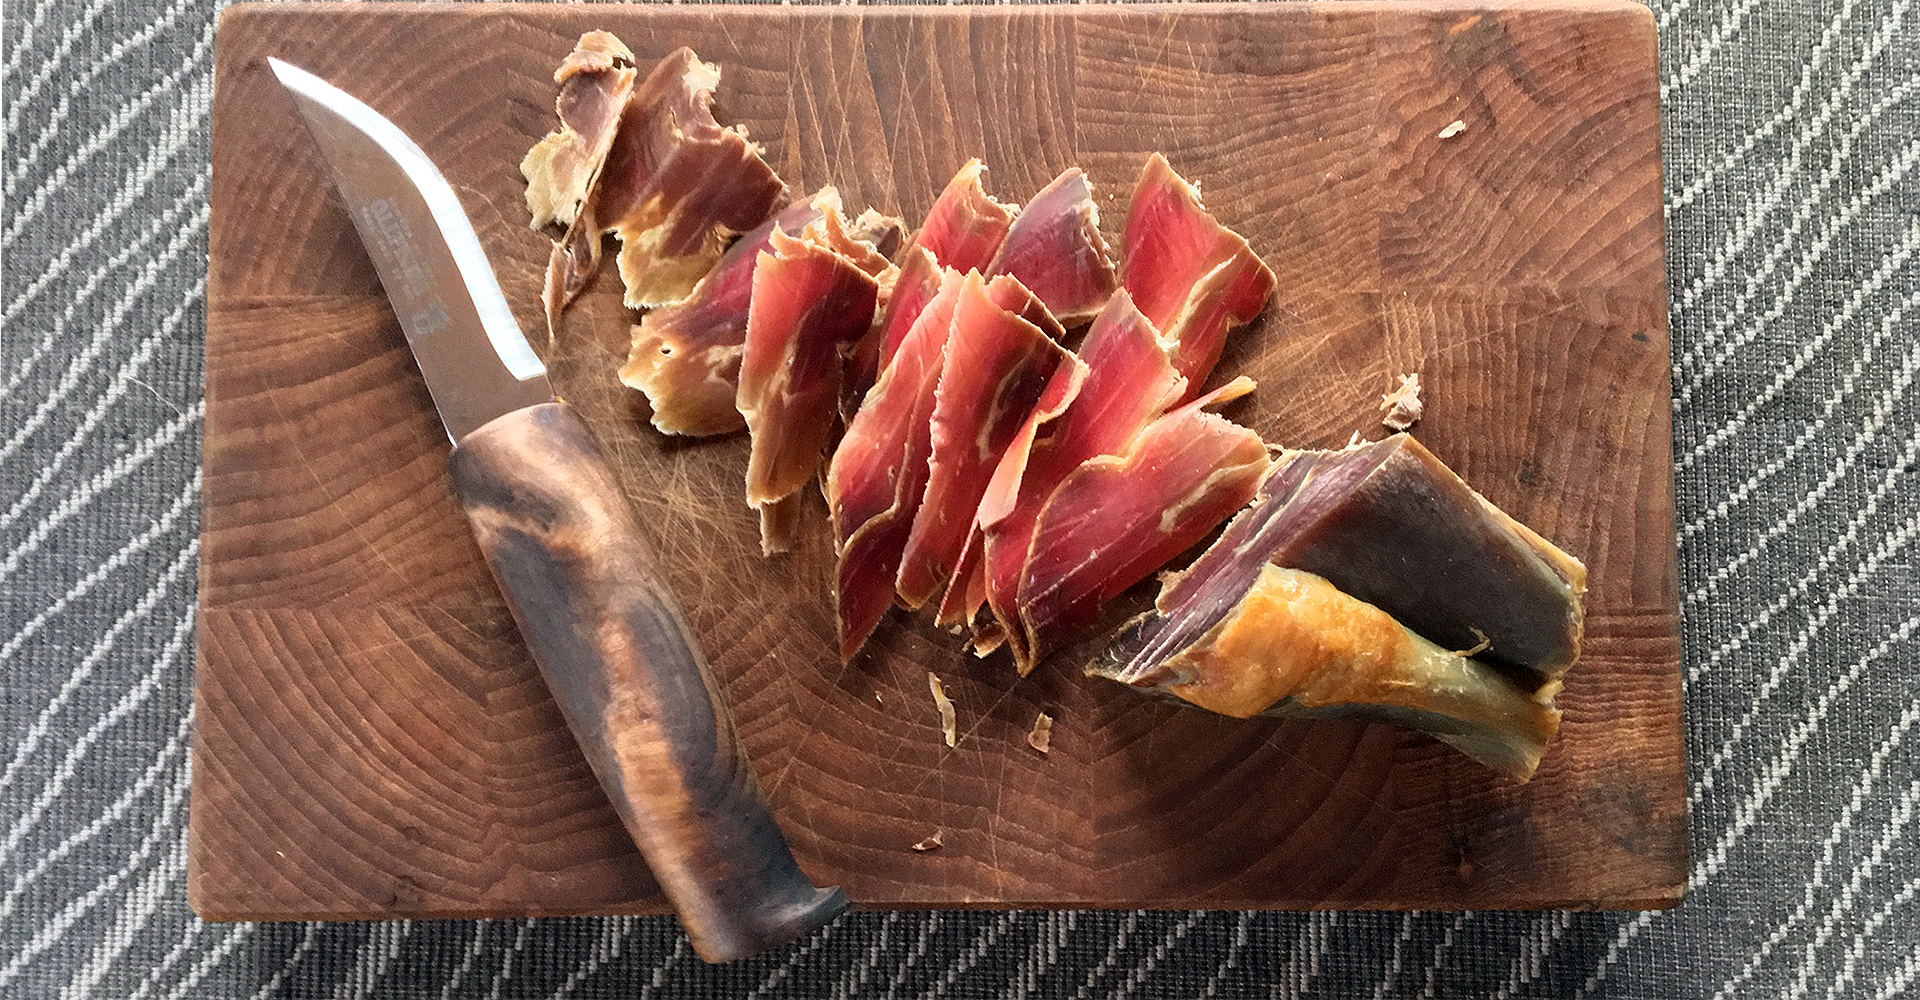 an homemade knife and som slices of fenalar, cured leg of lamb